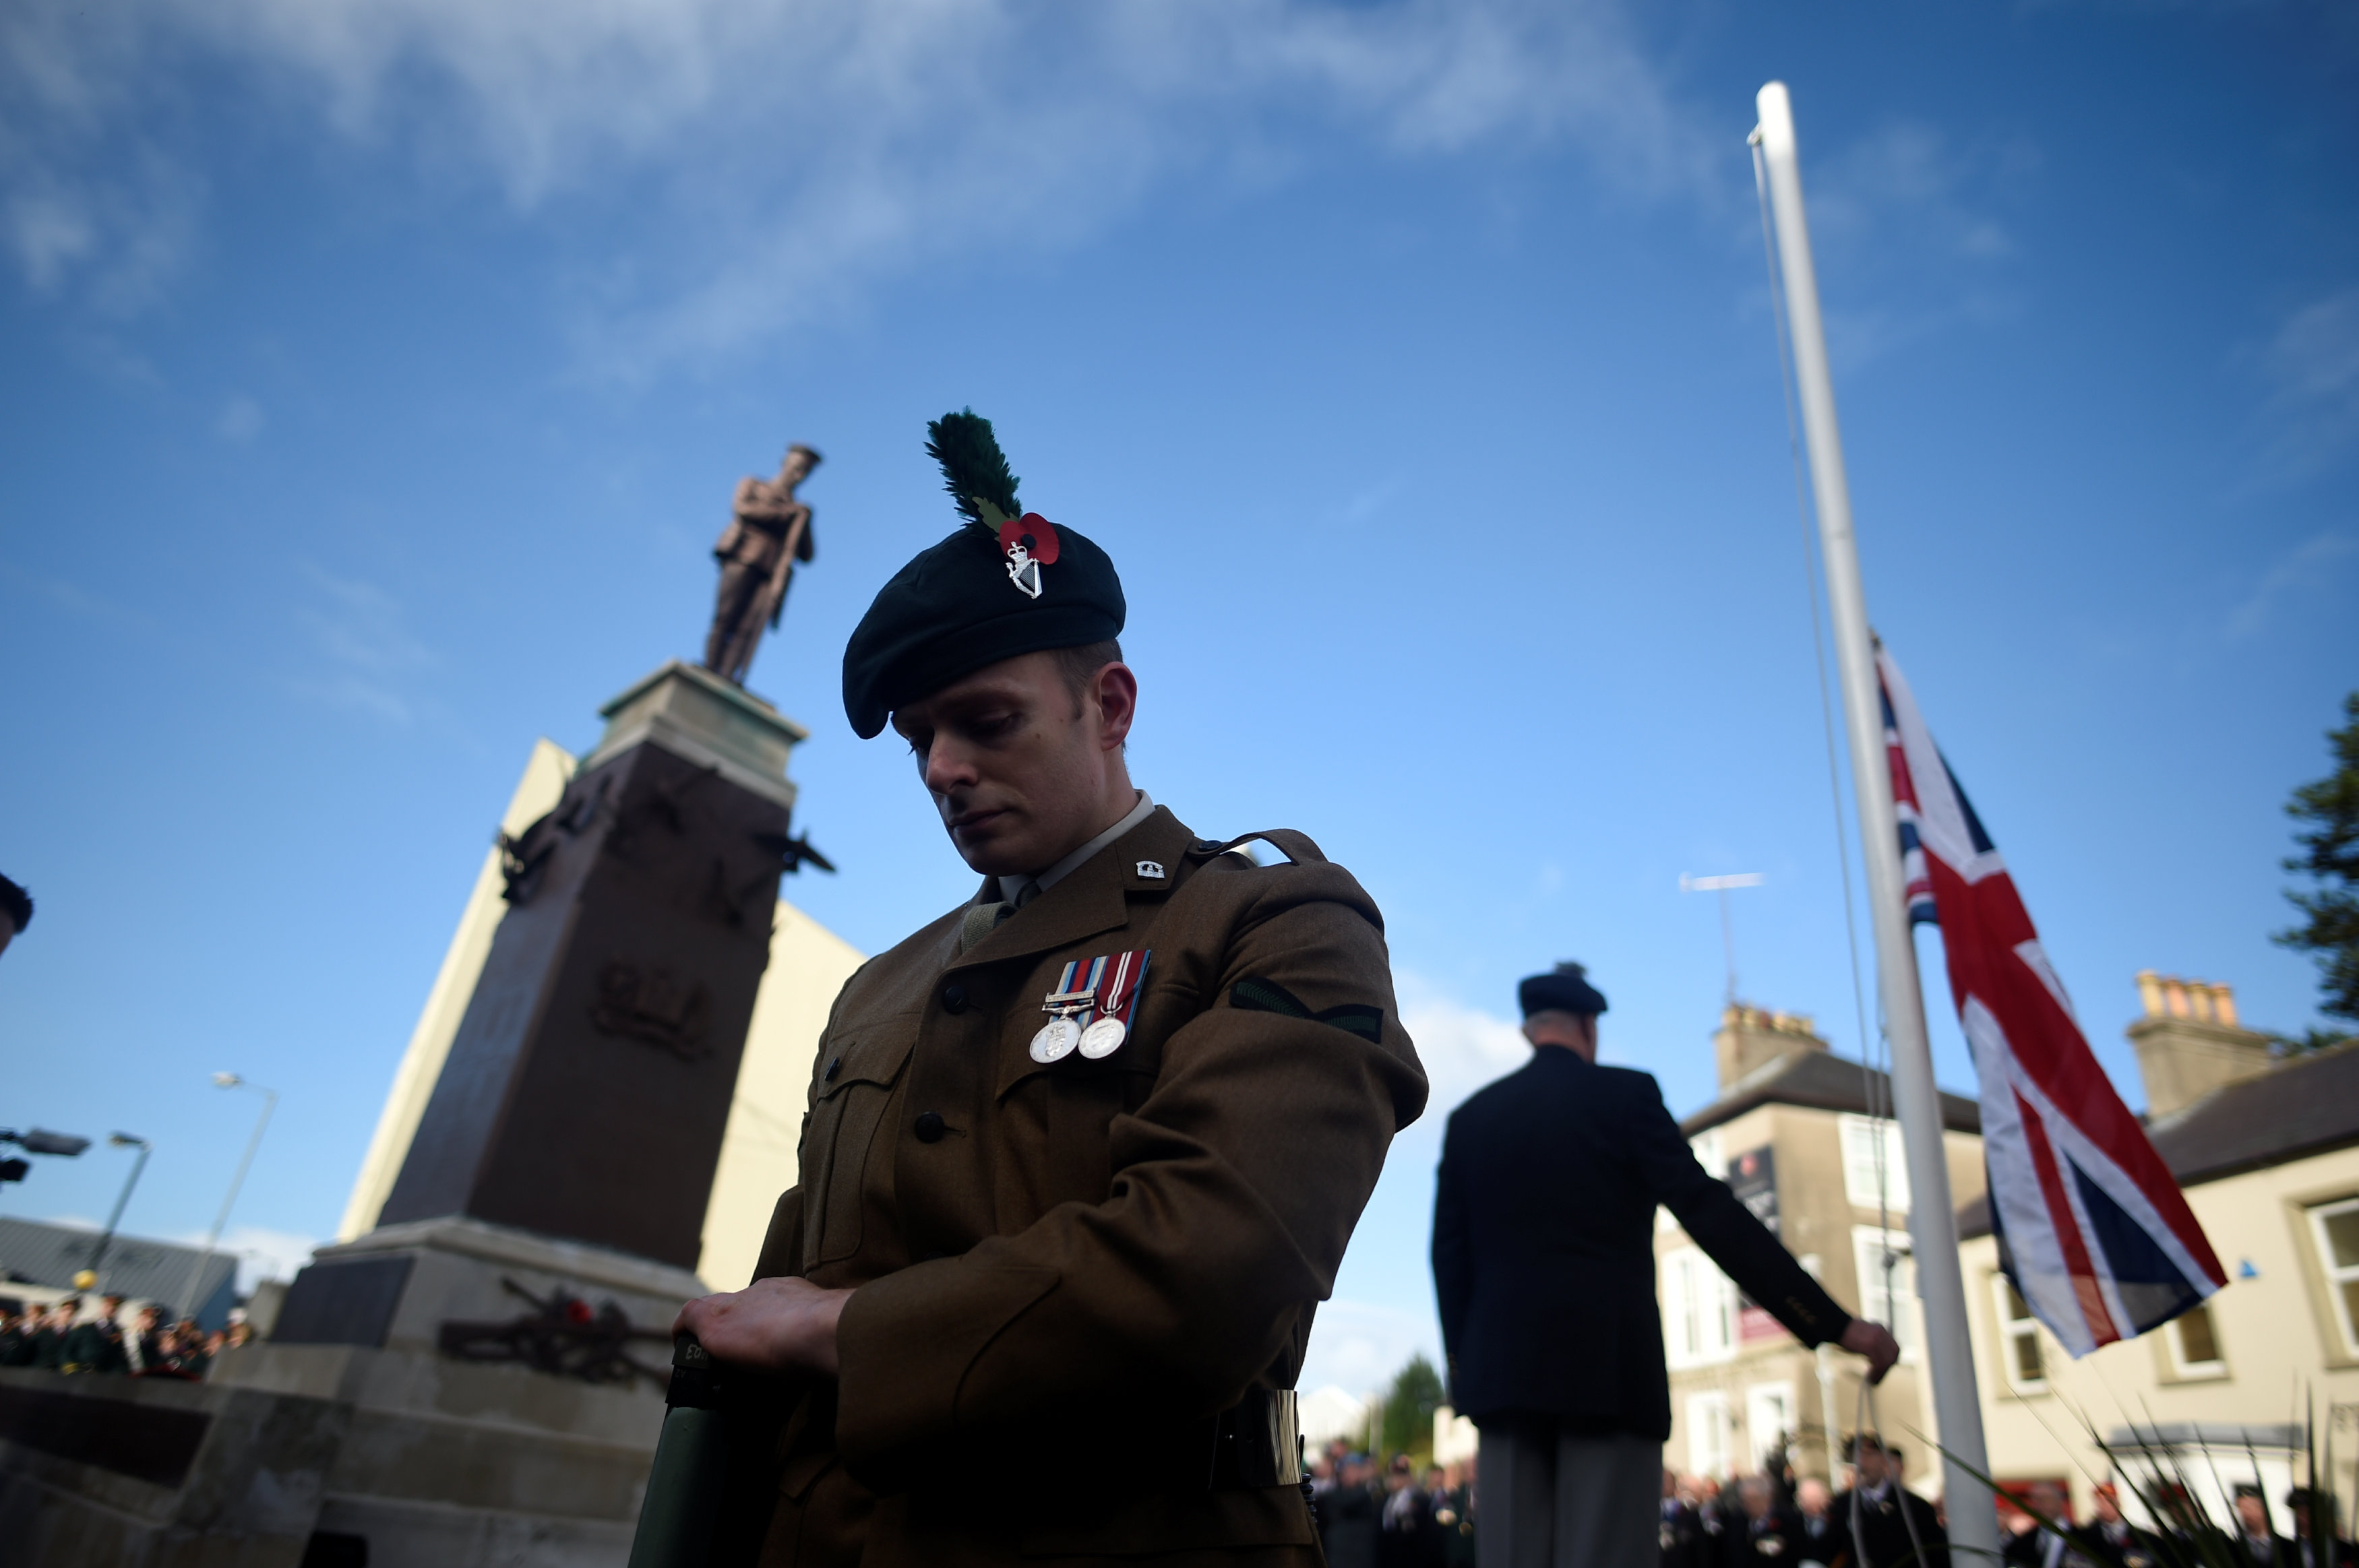 The Union flag is lowered to half mast during the Remembrance Sunday Cenotaph wreathe laying ceremony and commemoration of the 30th anniversary of the IRA Enniskillen bombing in Enniskillen, Northern Ireland, November 12, 2017